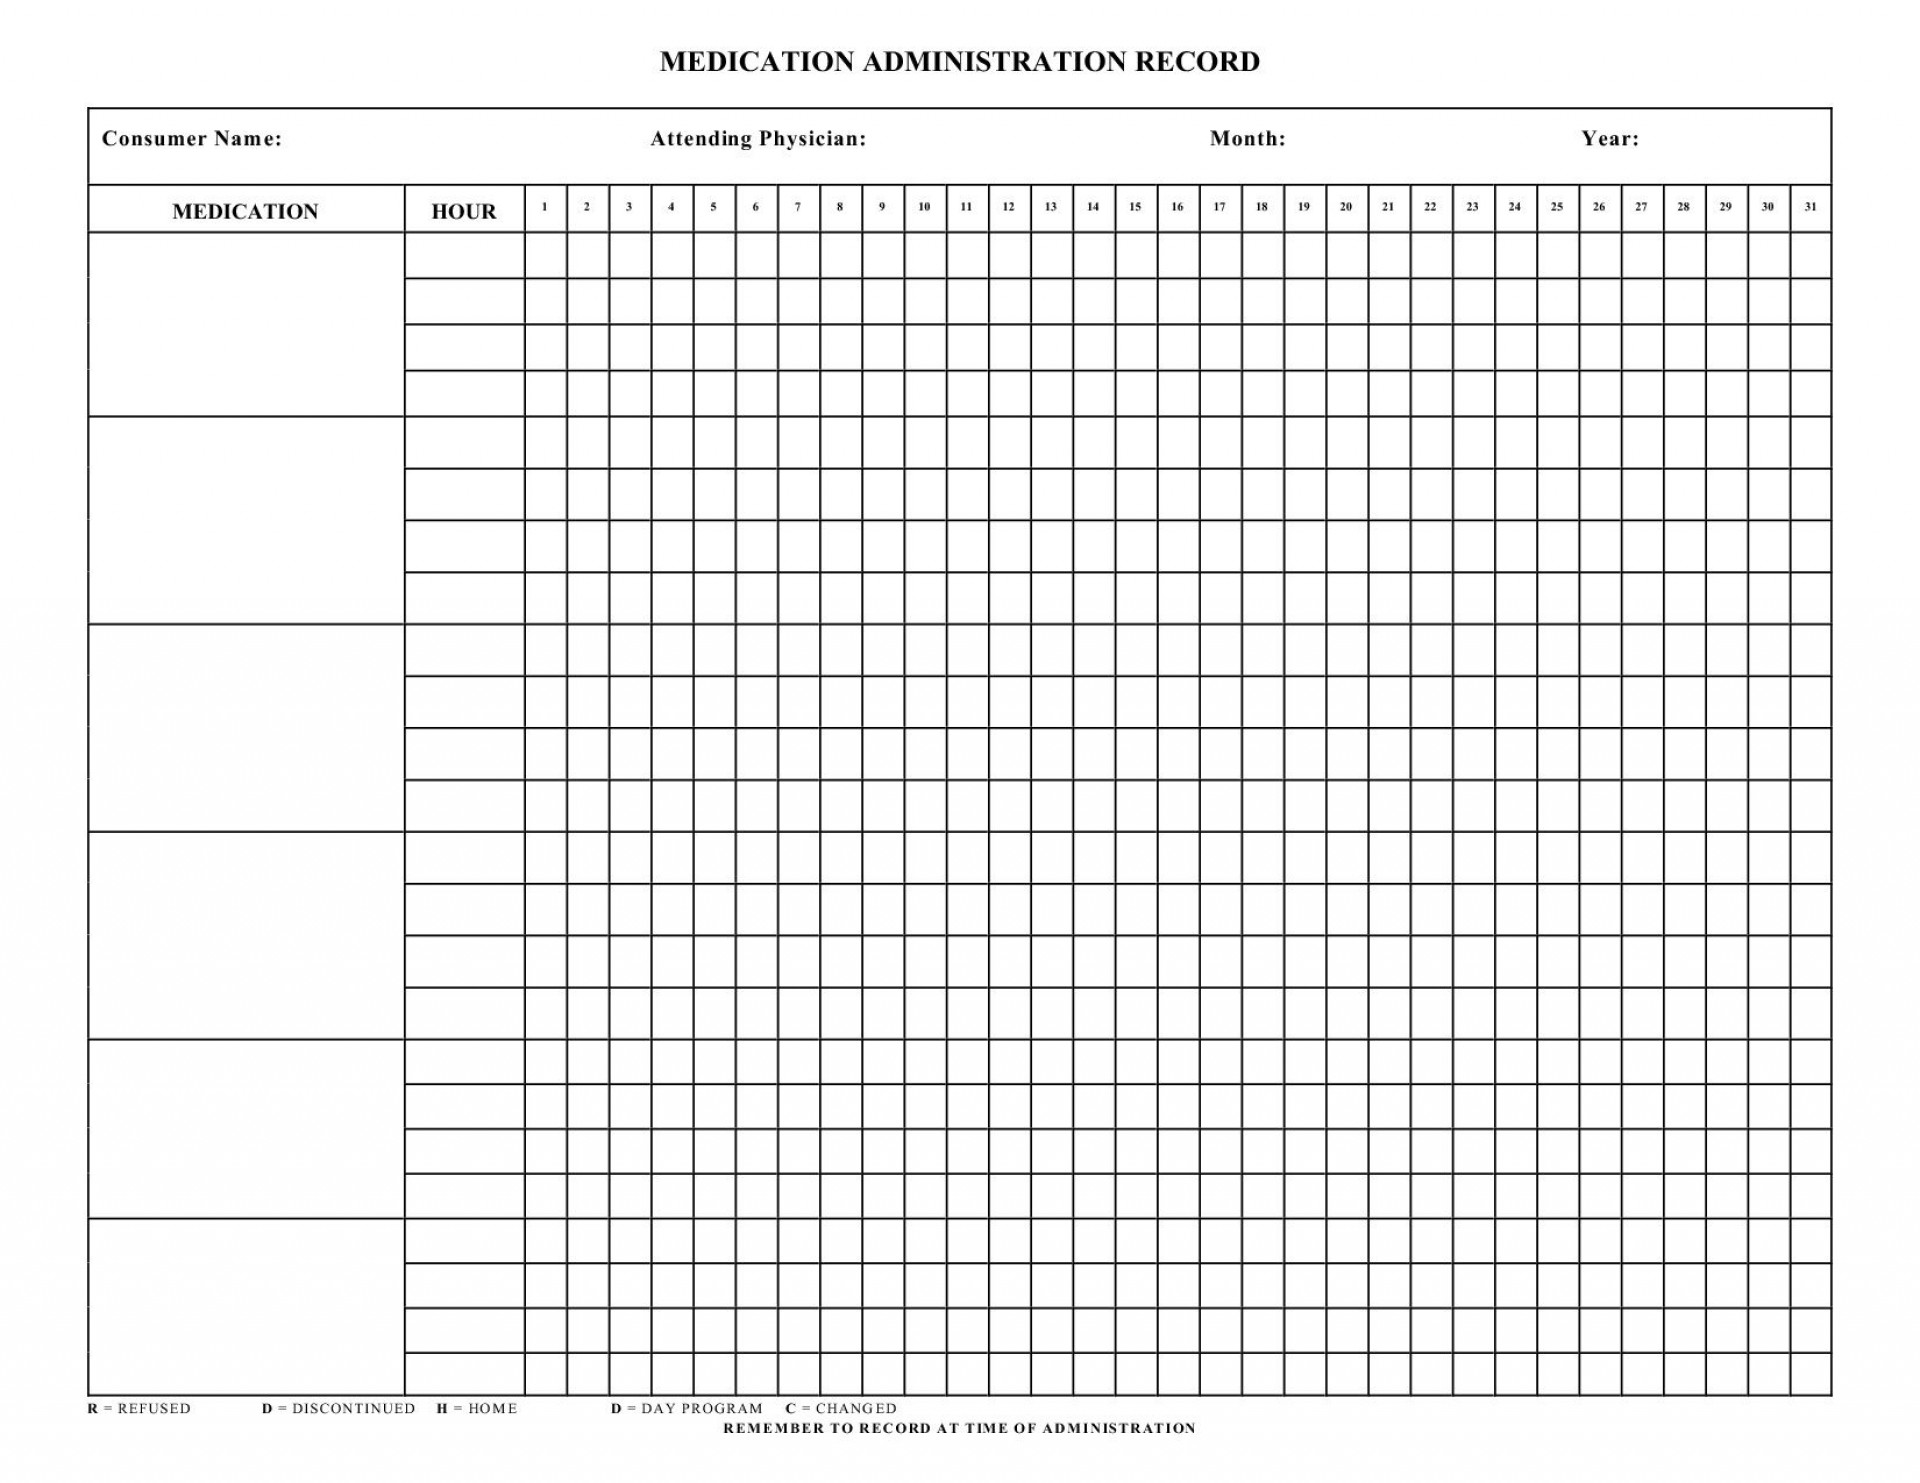 005 Sensational Medication Administration Record Template Sample  Download For Home Use1920